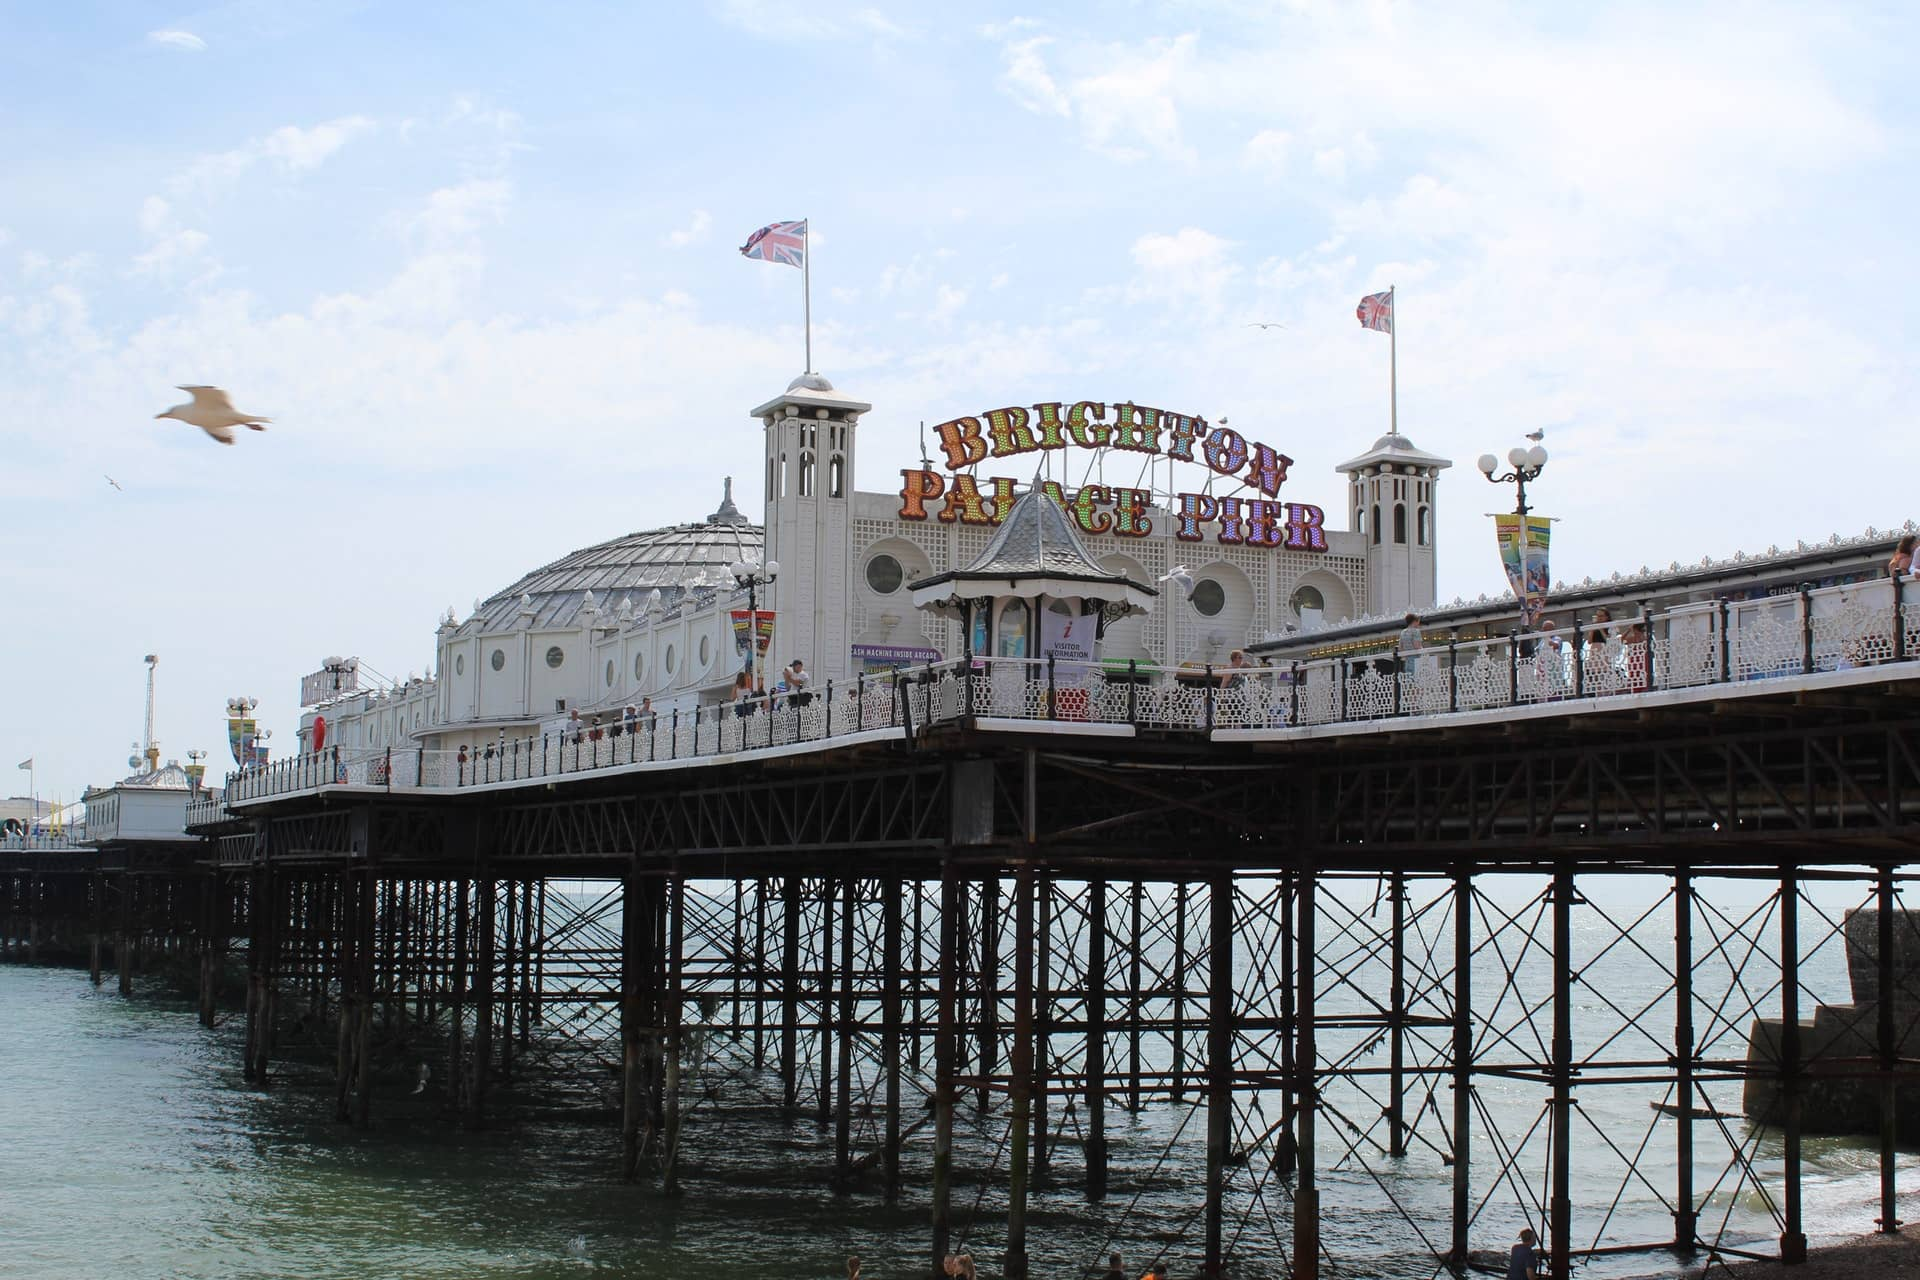 Tirocinio in Inghilterra a Brighton